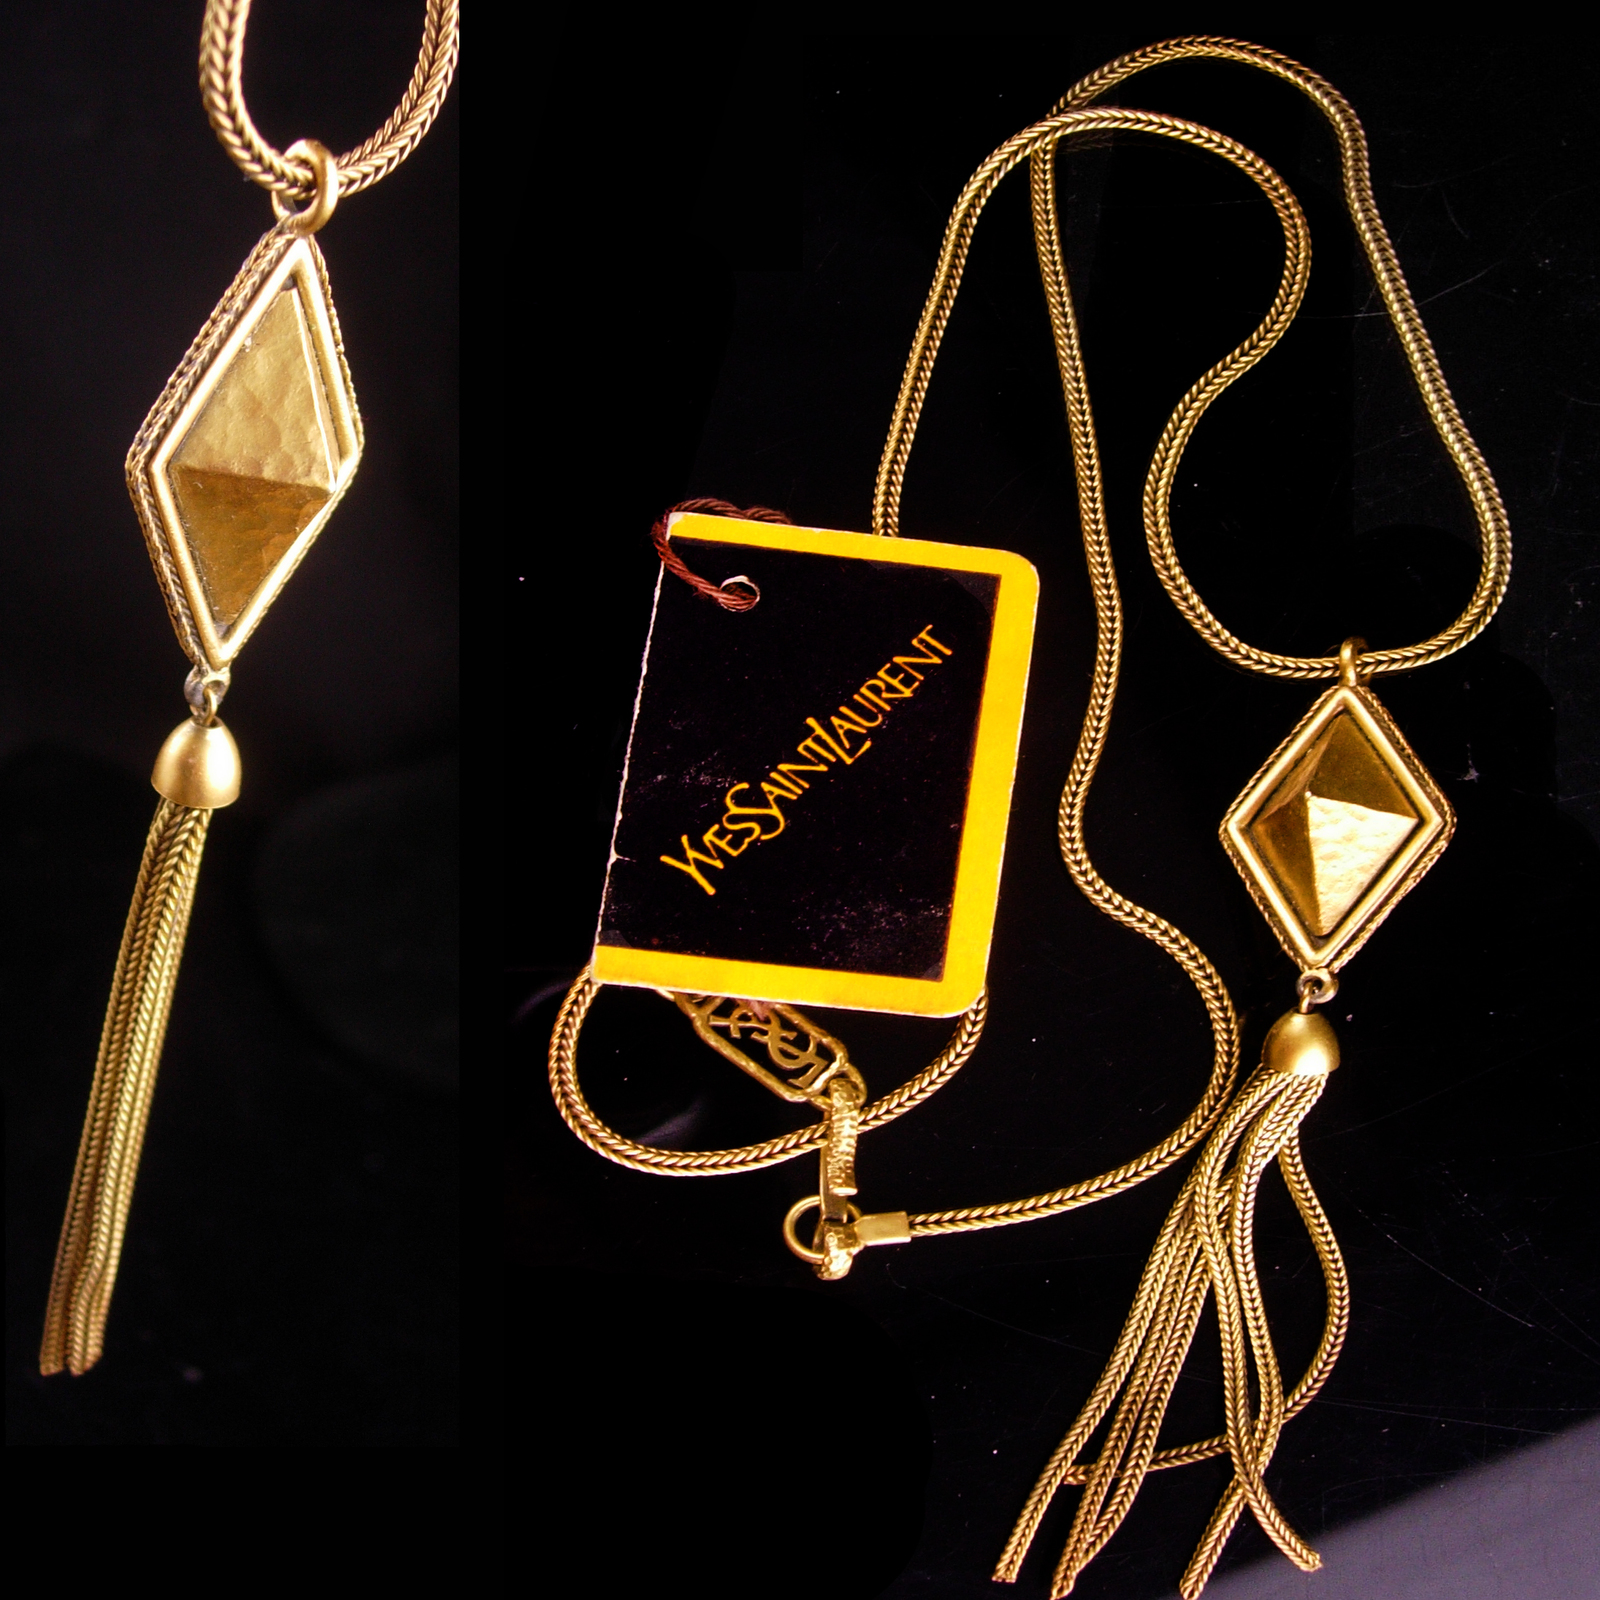 ddd727333b2 Vintage Yves Saint Laurent necklace - French and 42 similar items.  Yvesnecklace7